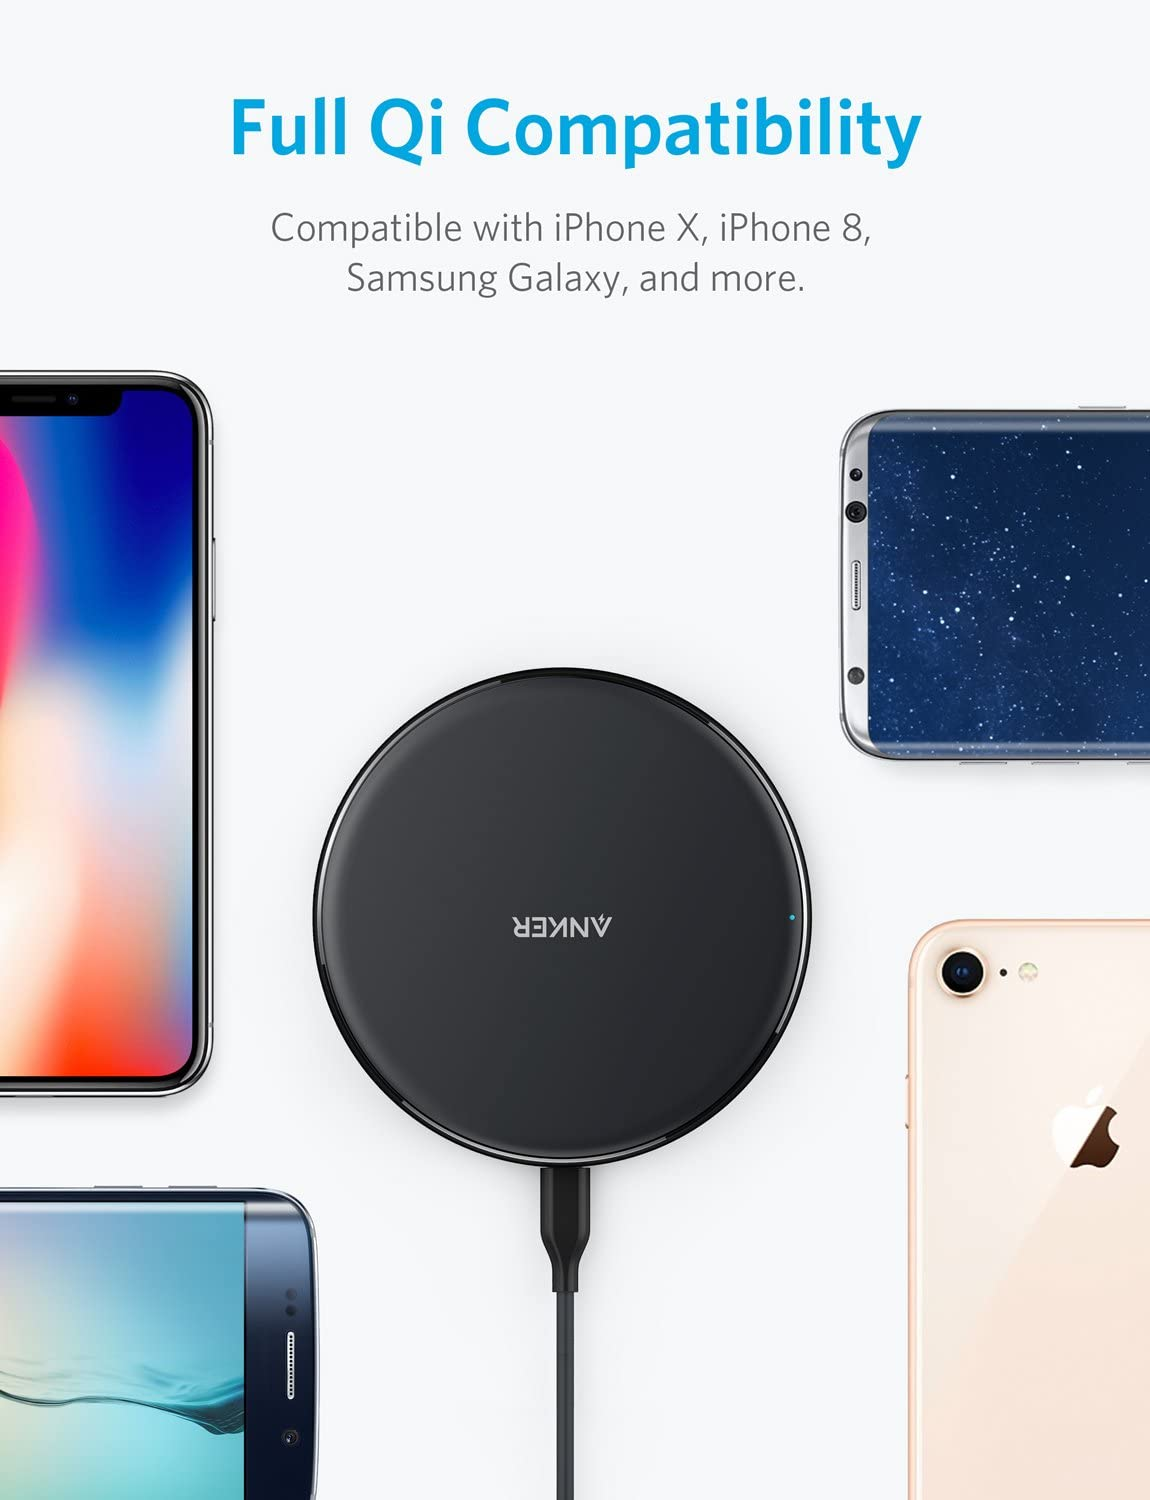 Xs Max 8 Anker Wireless Charger XR 8 Plus PowerPort Wireless 5 Pad Upgraded No AC Adapter XS Galaxy S10 S9 S8 Compatible iPhone 11 Note 10 Note 9 Note 8 Qi-Certified 11 Pro 11 Pro Max X